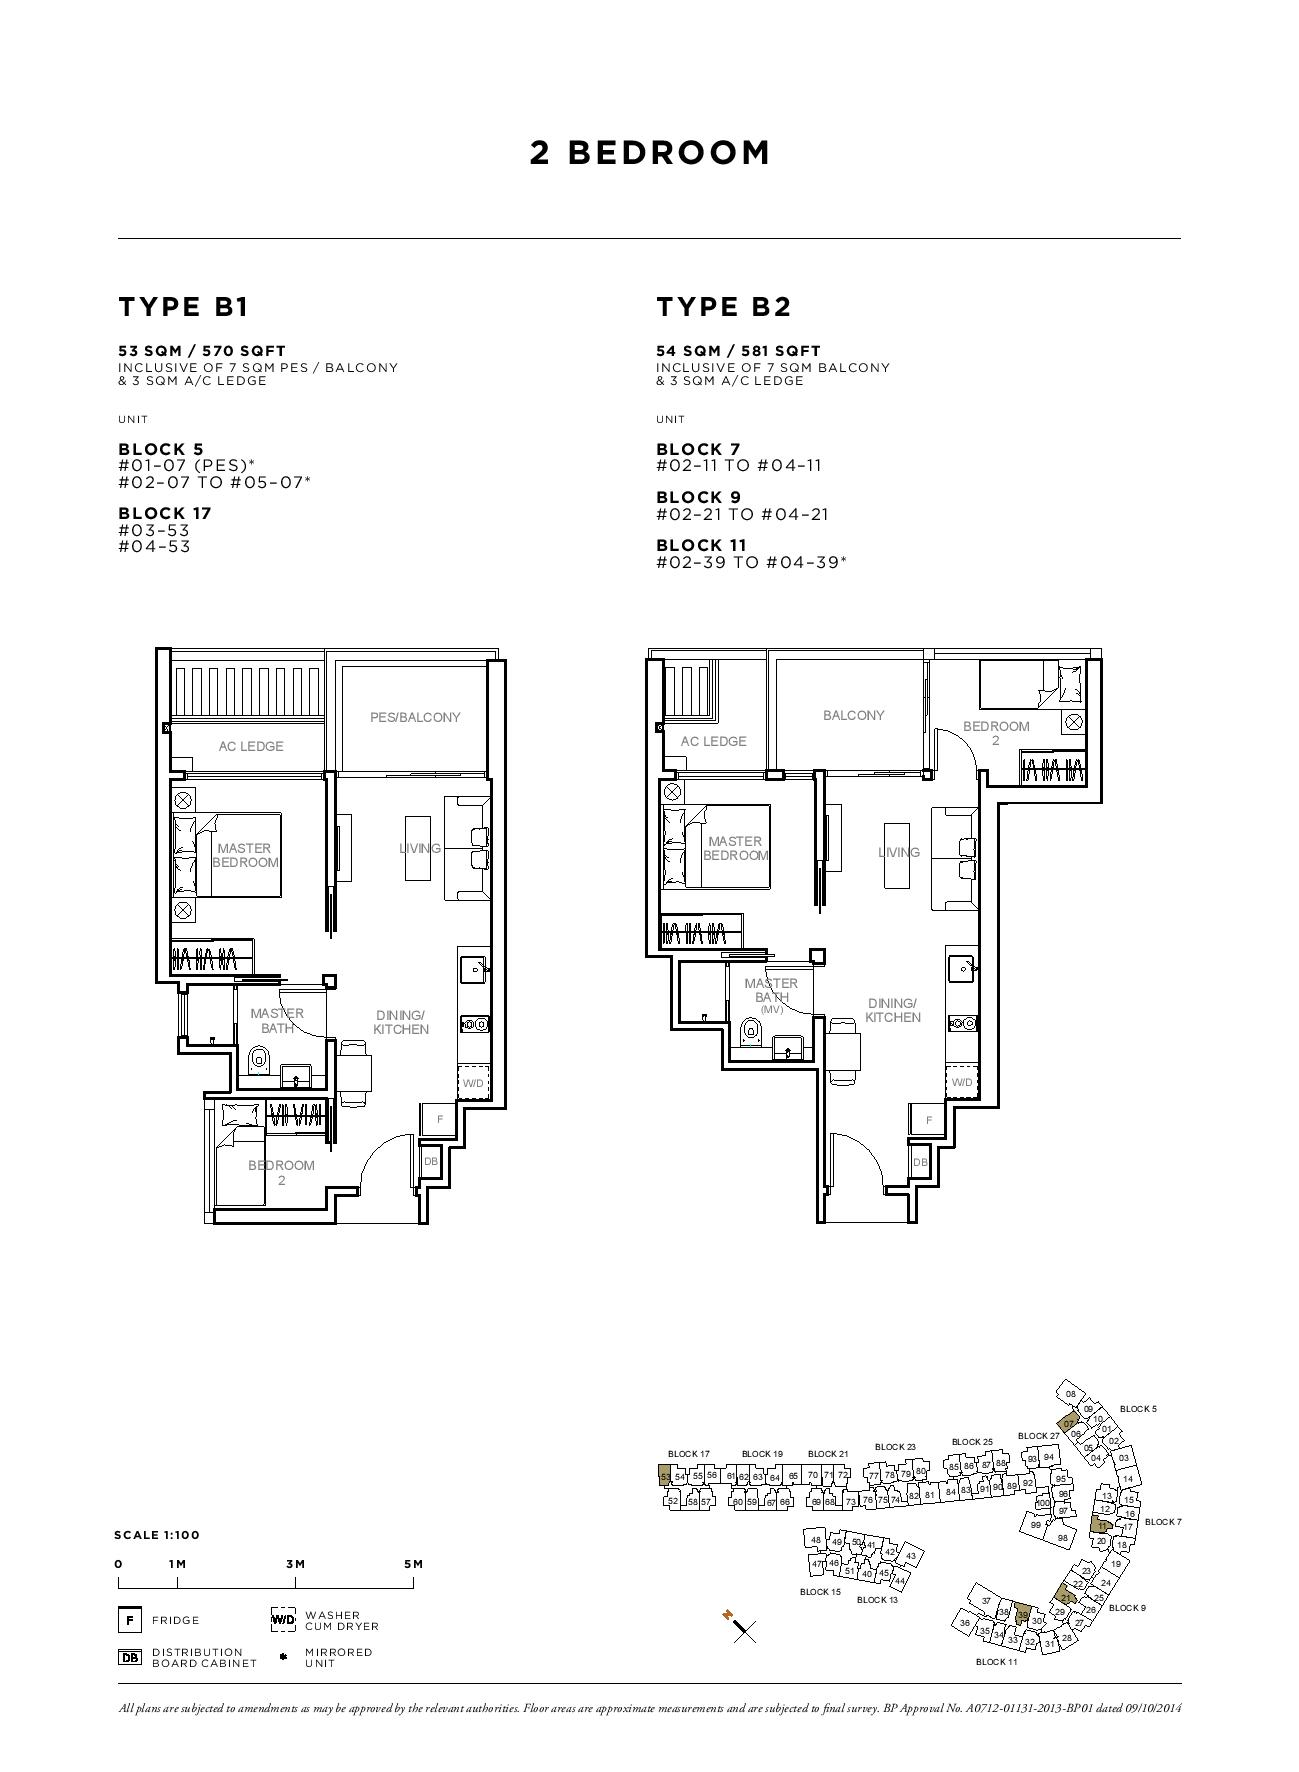 Sophia Hills 2 Bedroom Type B1, B2 Floor Plans